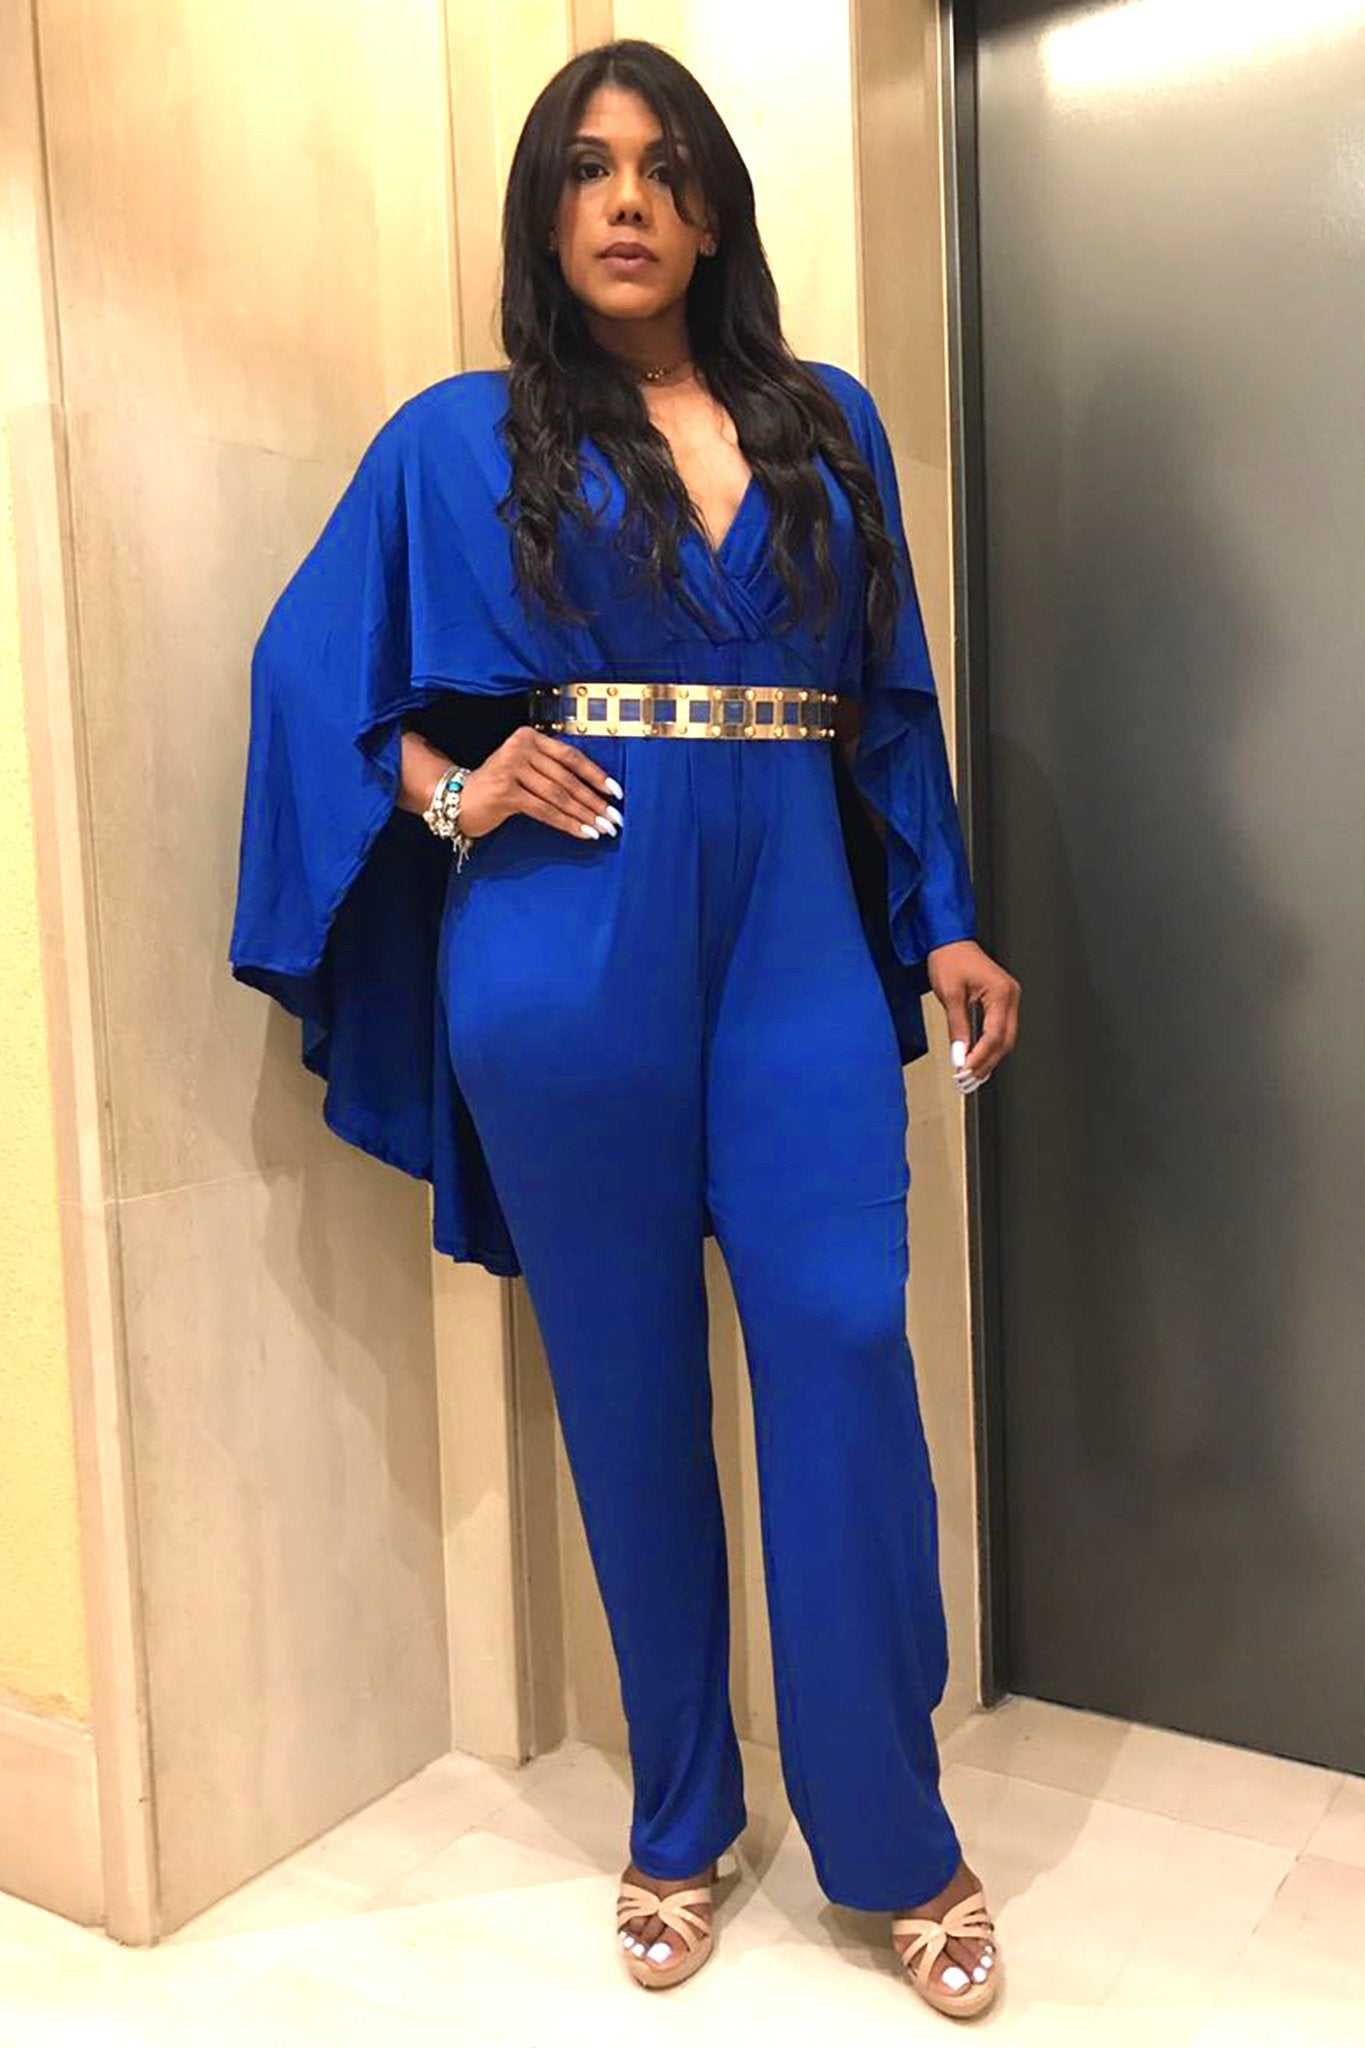 Royal Blue V Neck Plus Size Jumpsuit With Attached Flowing Cape My